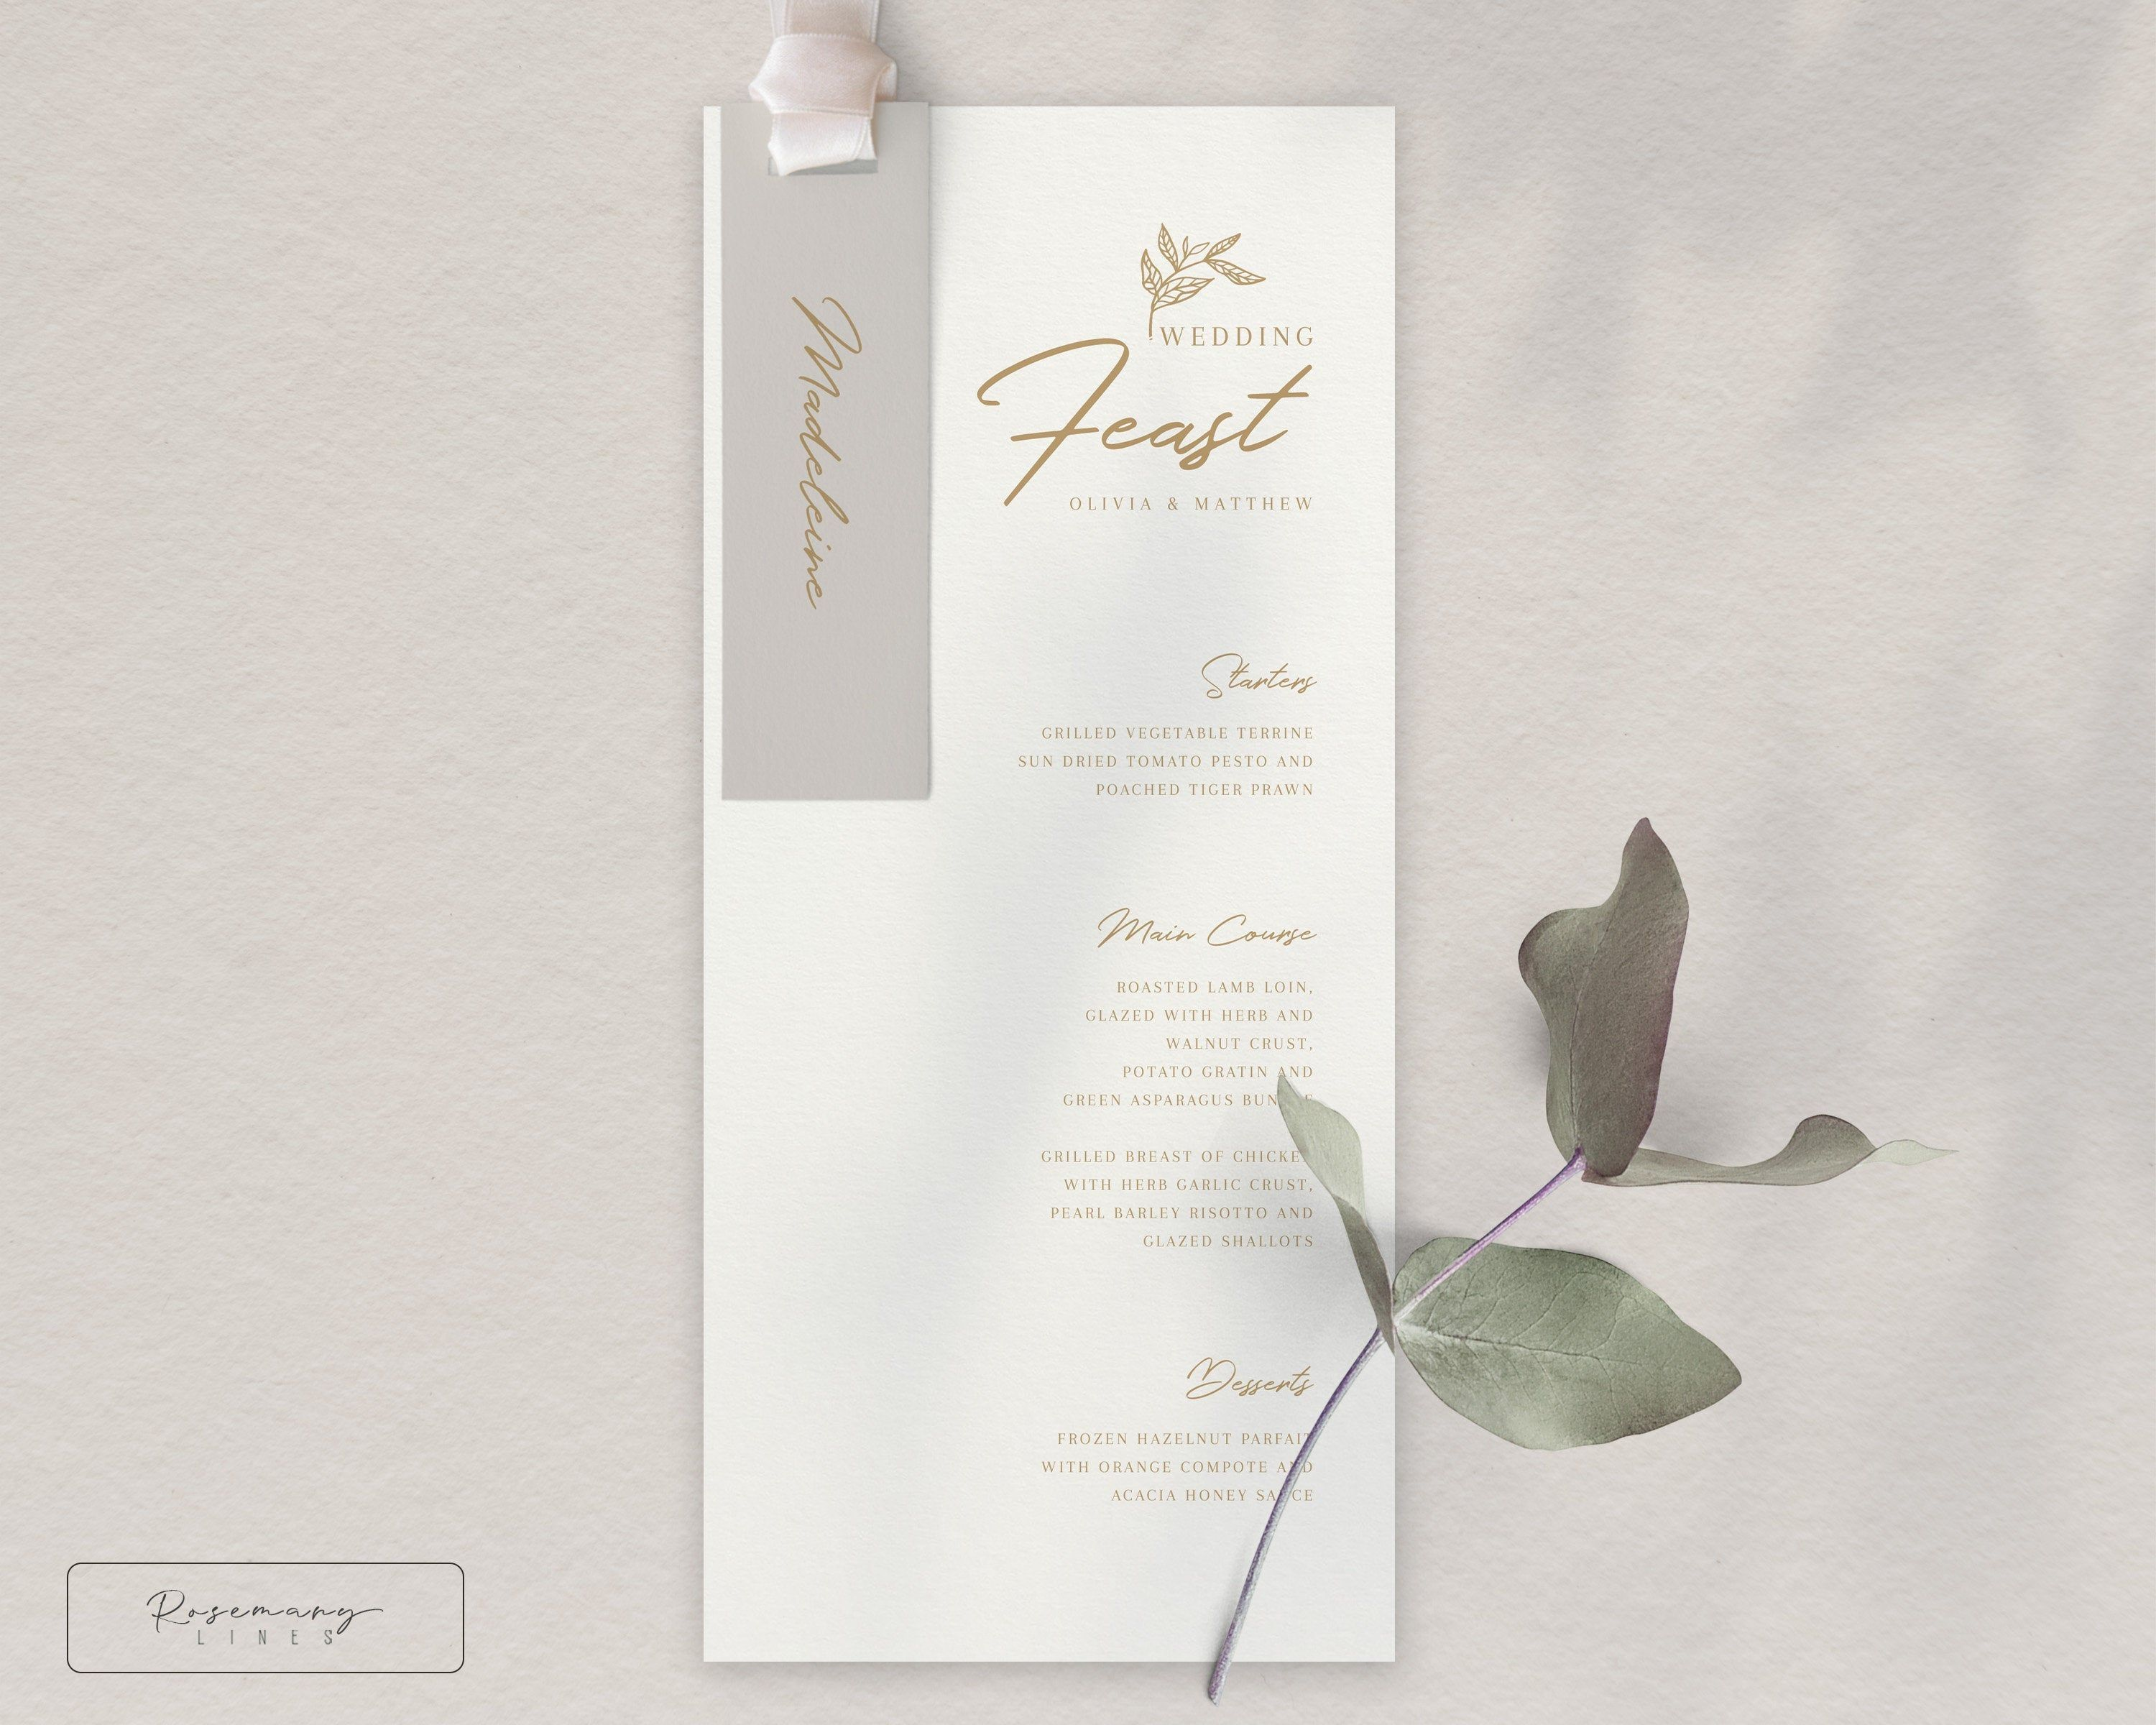 Wedding Menu Template, Minimalist Menu Template, Gold Menu Template, Modern Wedding Menu Cards, BONUS Place Card, INSTANT DOWNLOAD #078-9 #weddingmenutemplate Wedding Menu Template, Minimalist Menu Template, Gold Menu Template, Modern Wedding Menu Cards, BONUS Place Card, INSTANT DOWNLOAD #078-9